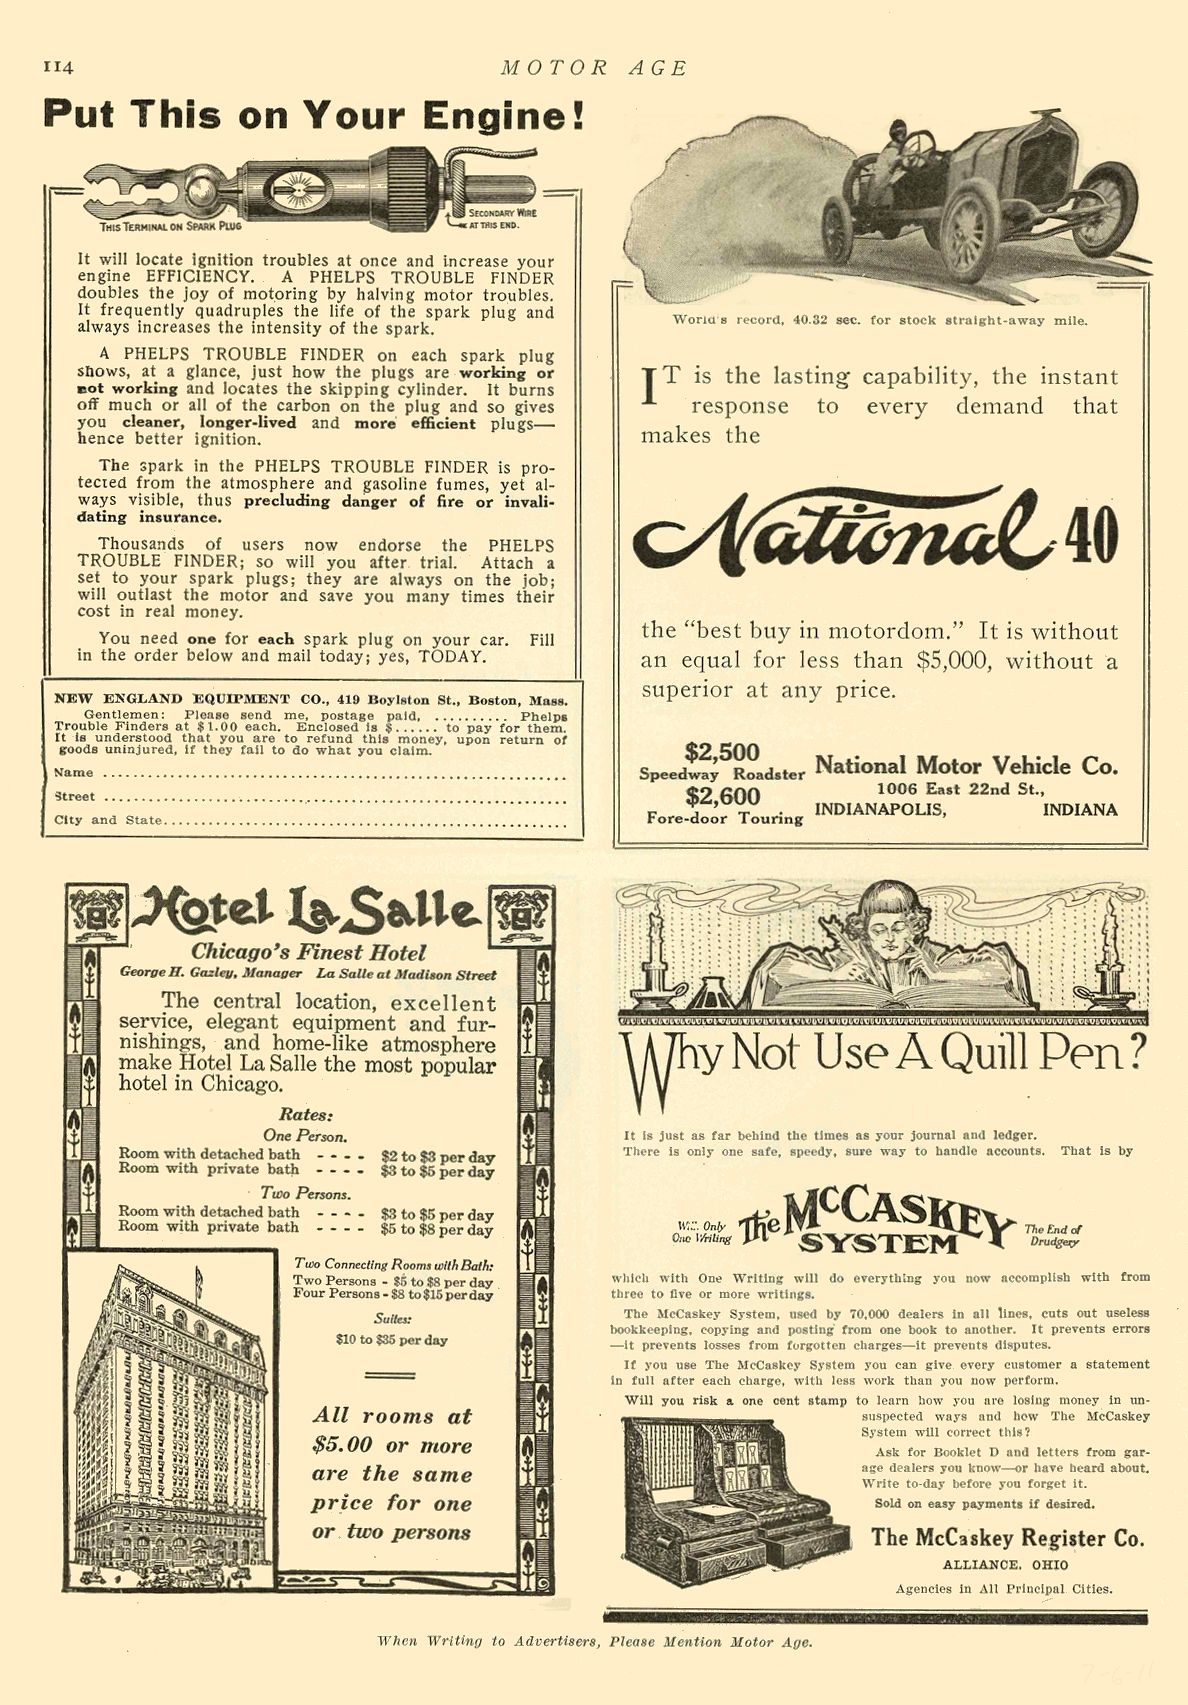 1911 7 6 NATIONAL National 40 National Motor Vehicle Co. Indianapolis, IND MOTOR AGE July 6, 1911 8.5″x12″ page 114